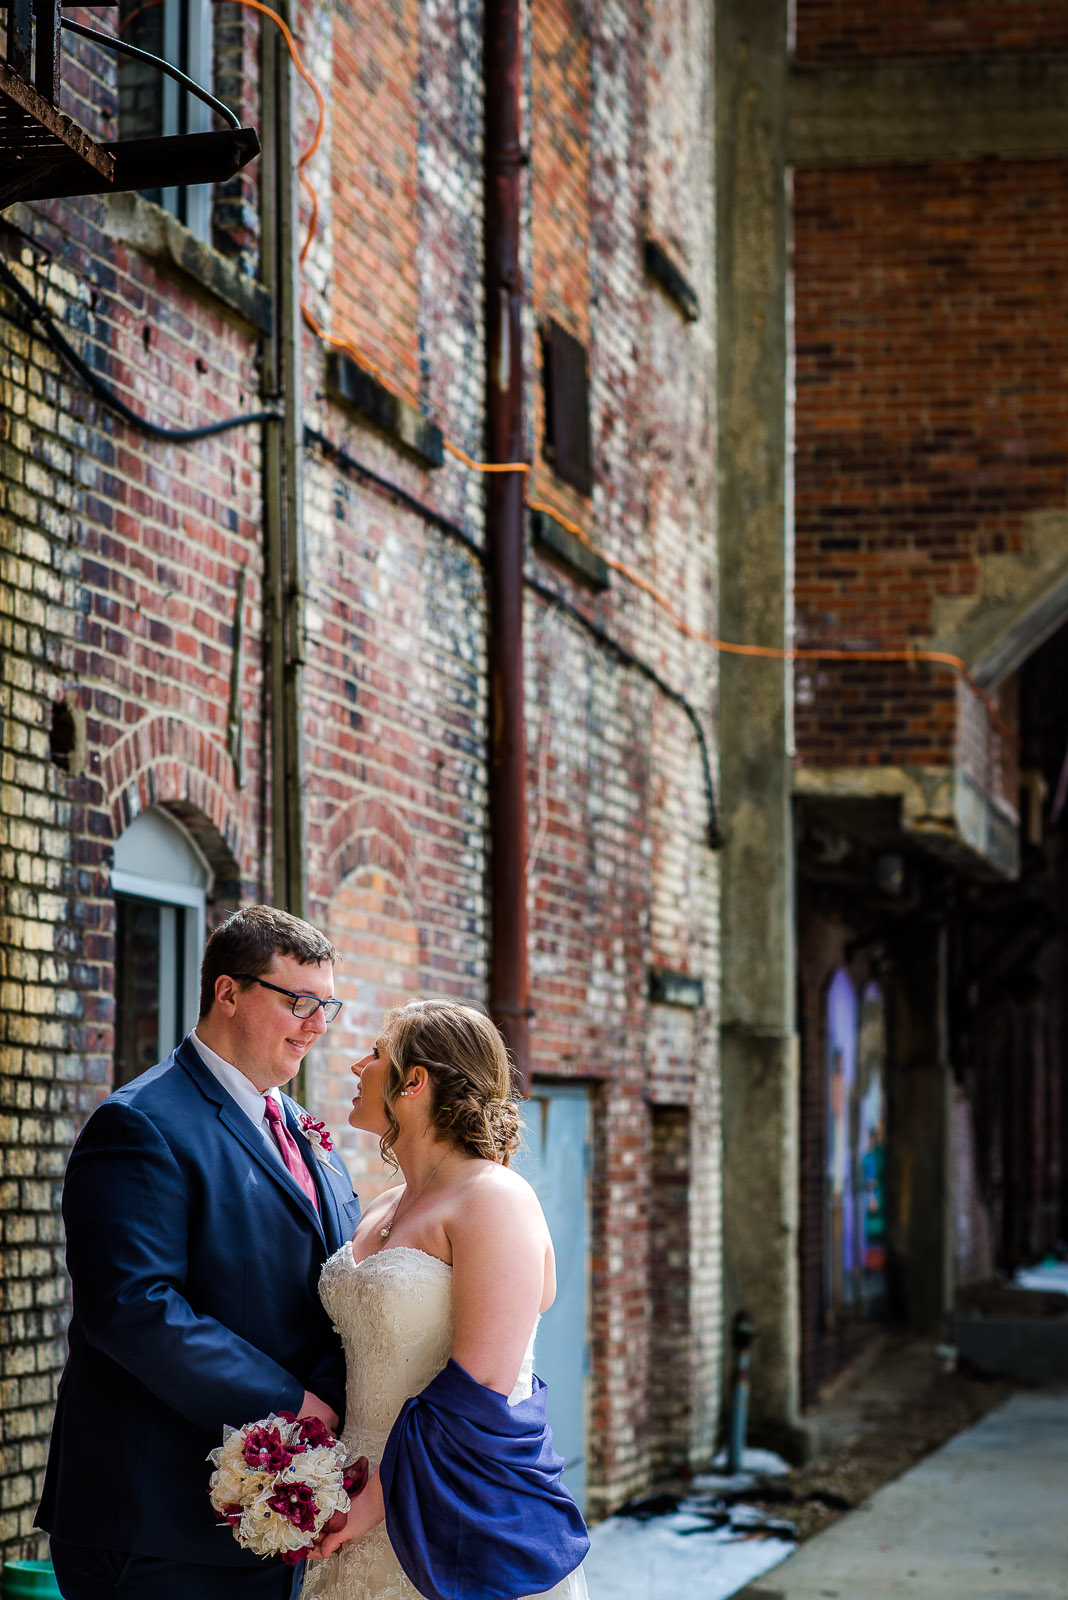 Eric_and_Christy_Photography_Blog_2018_Portraits-37